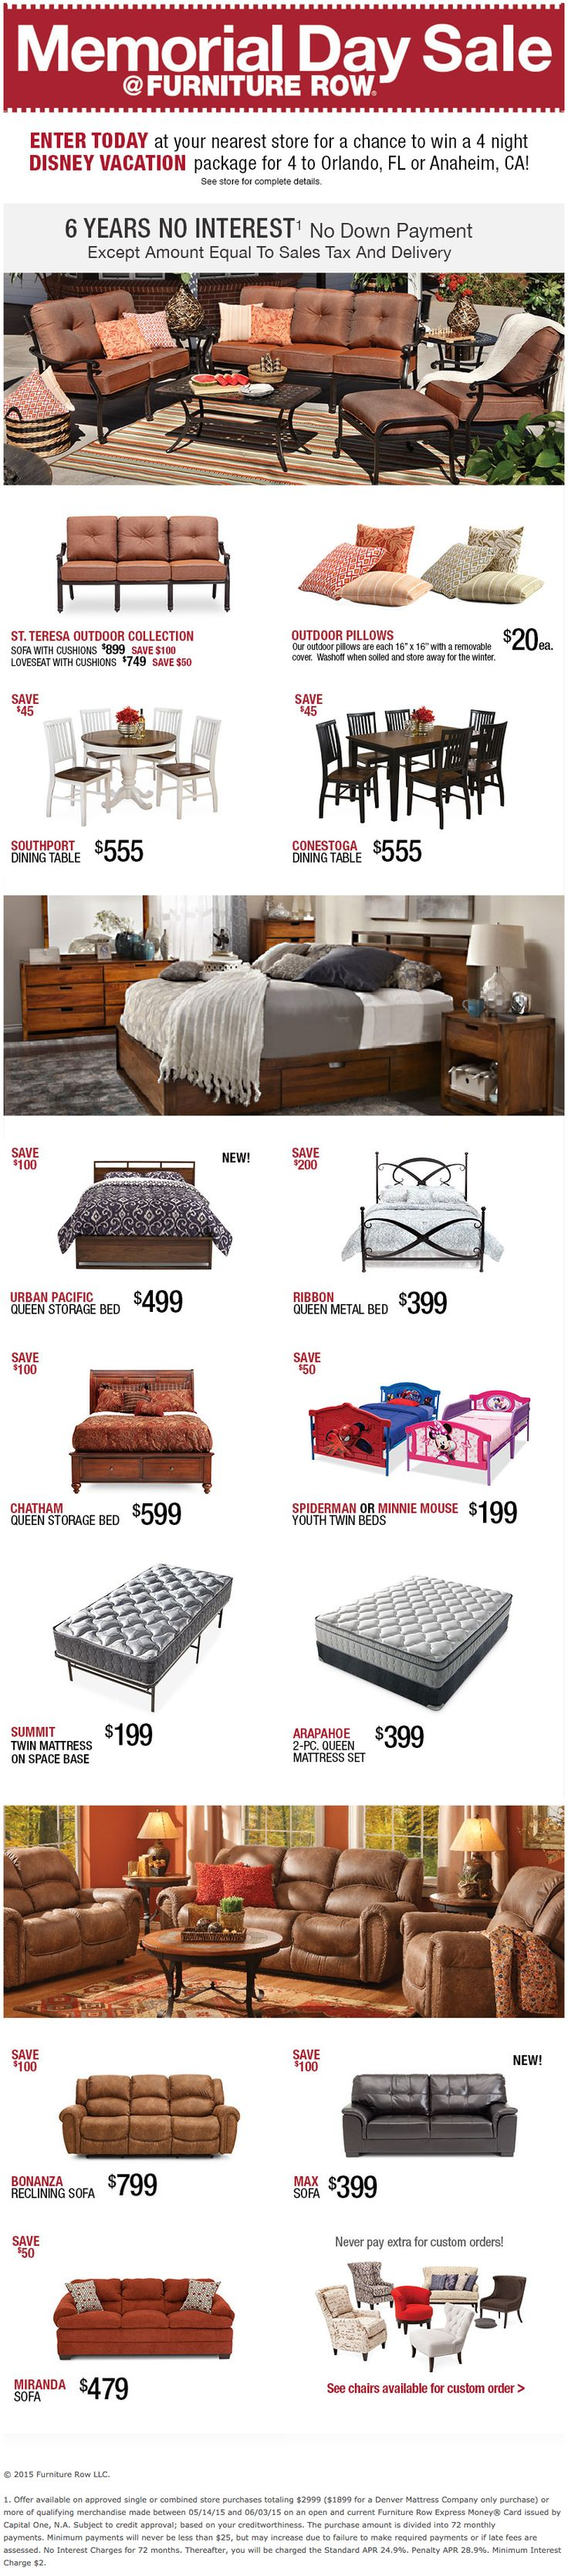 192 Best Sofamart Images On Pinterest | Living Room Furniture, Leather  Sofas And Dream Homes